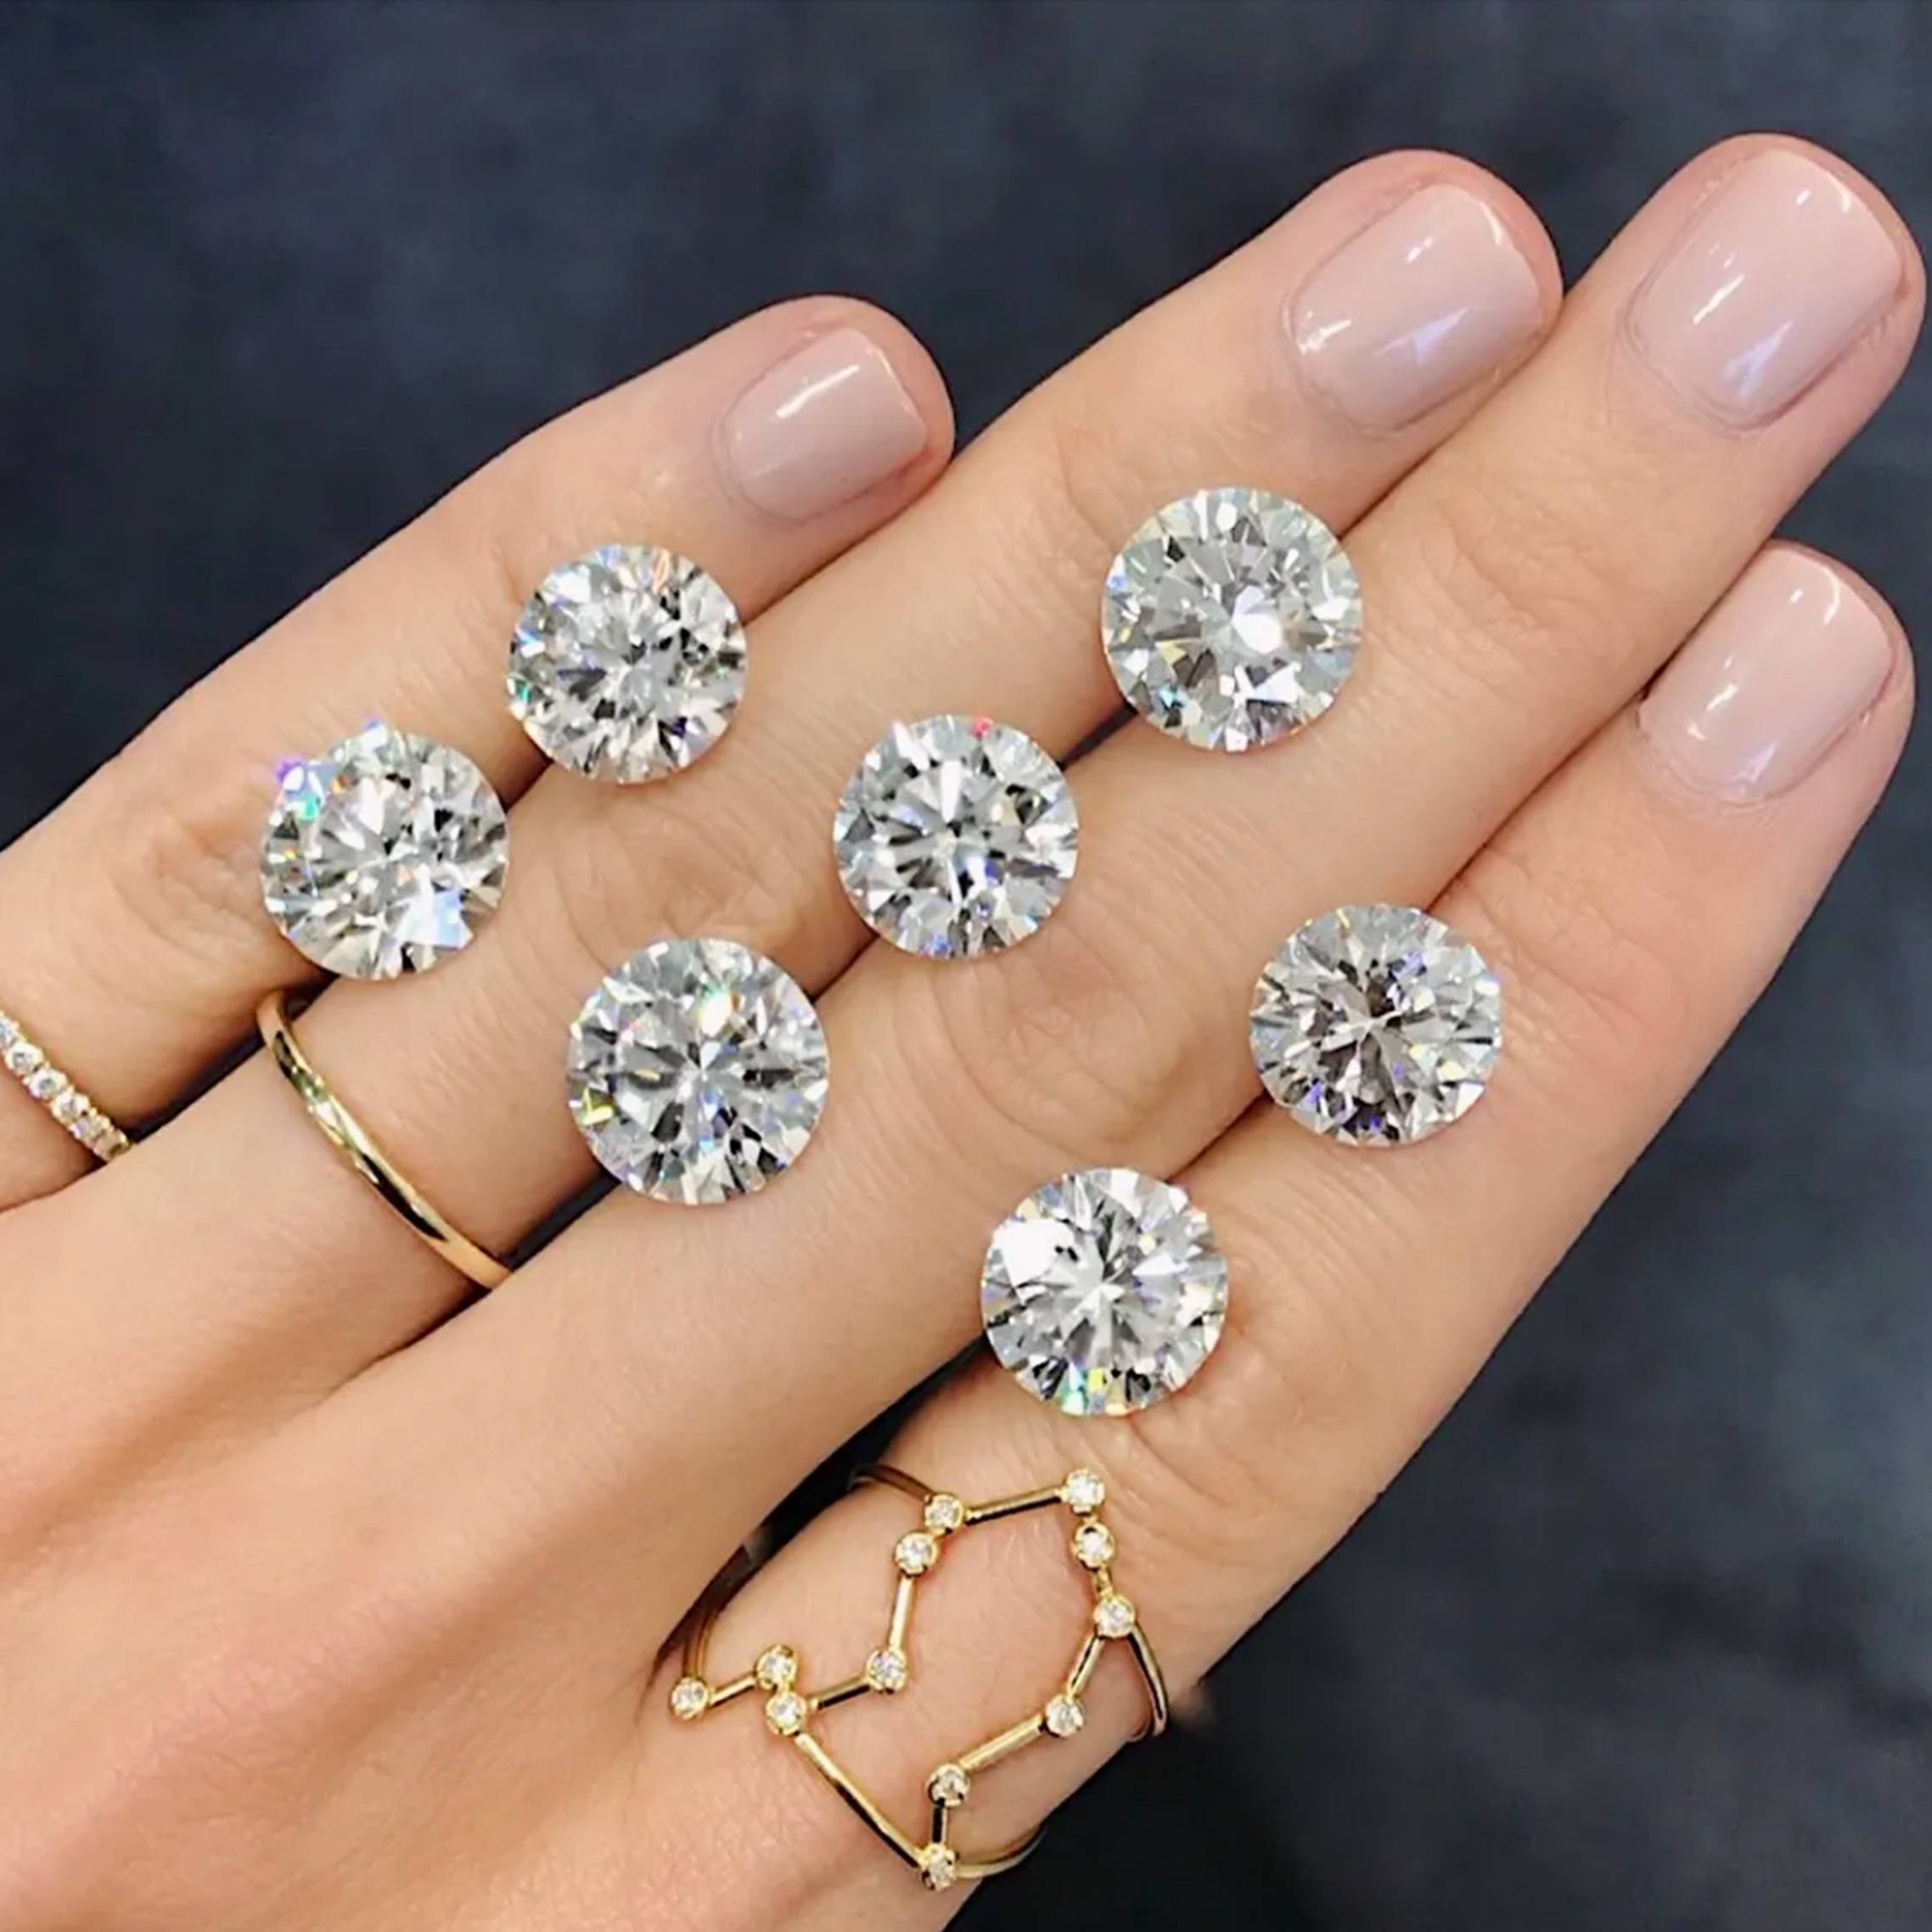 Loose diamonds on a hand